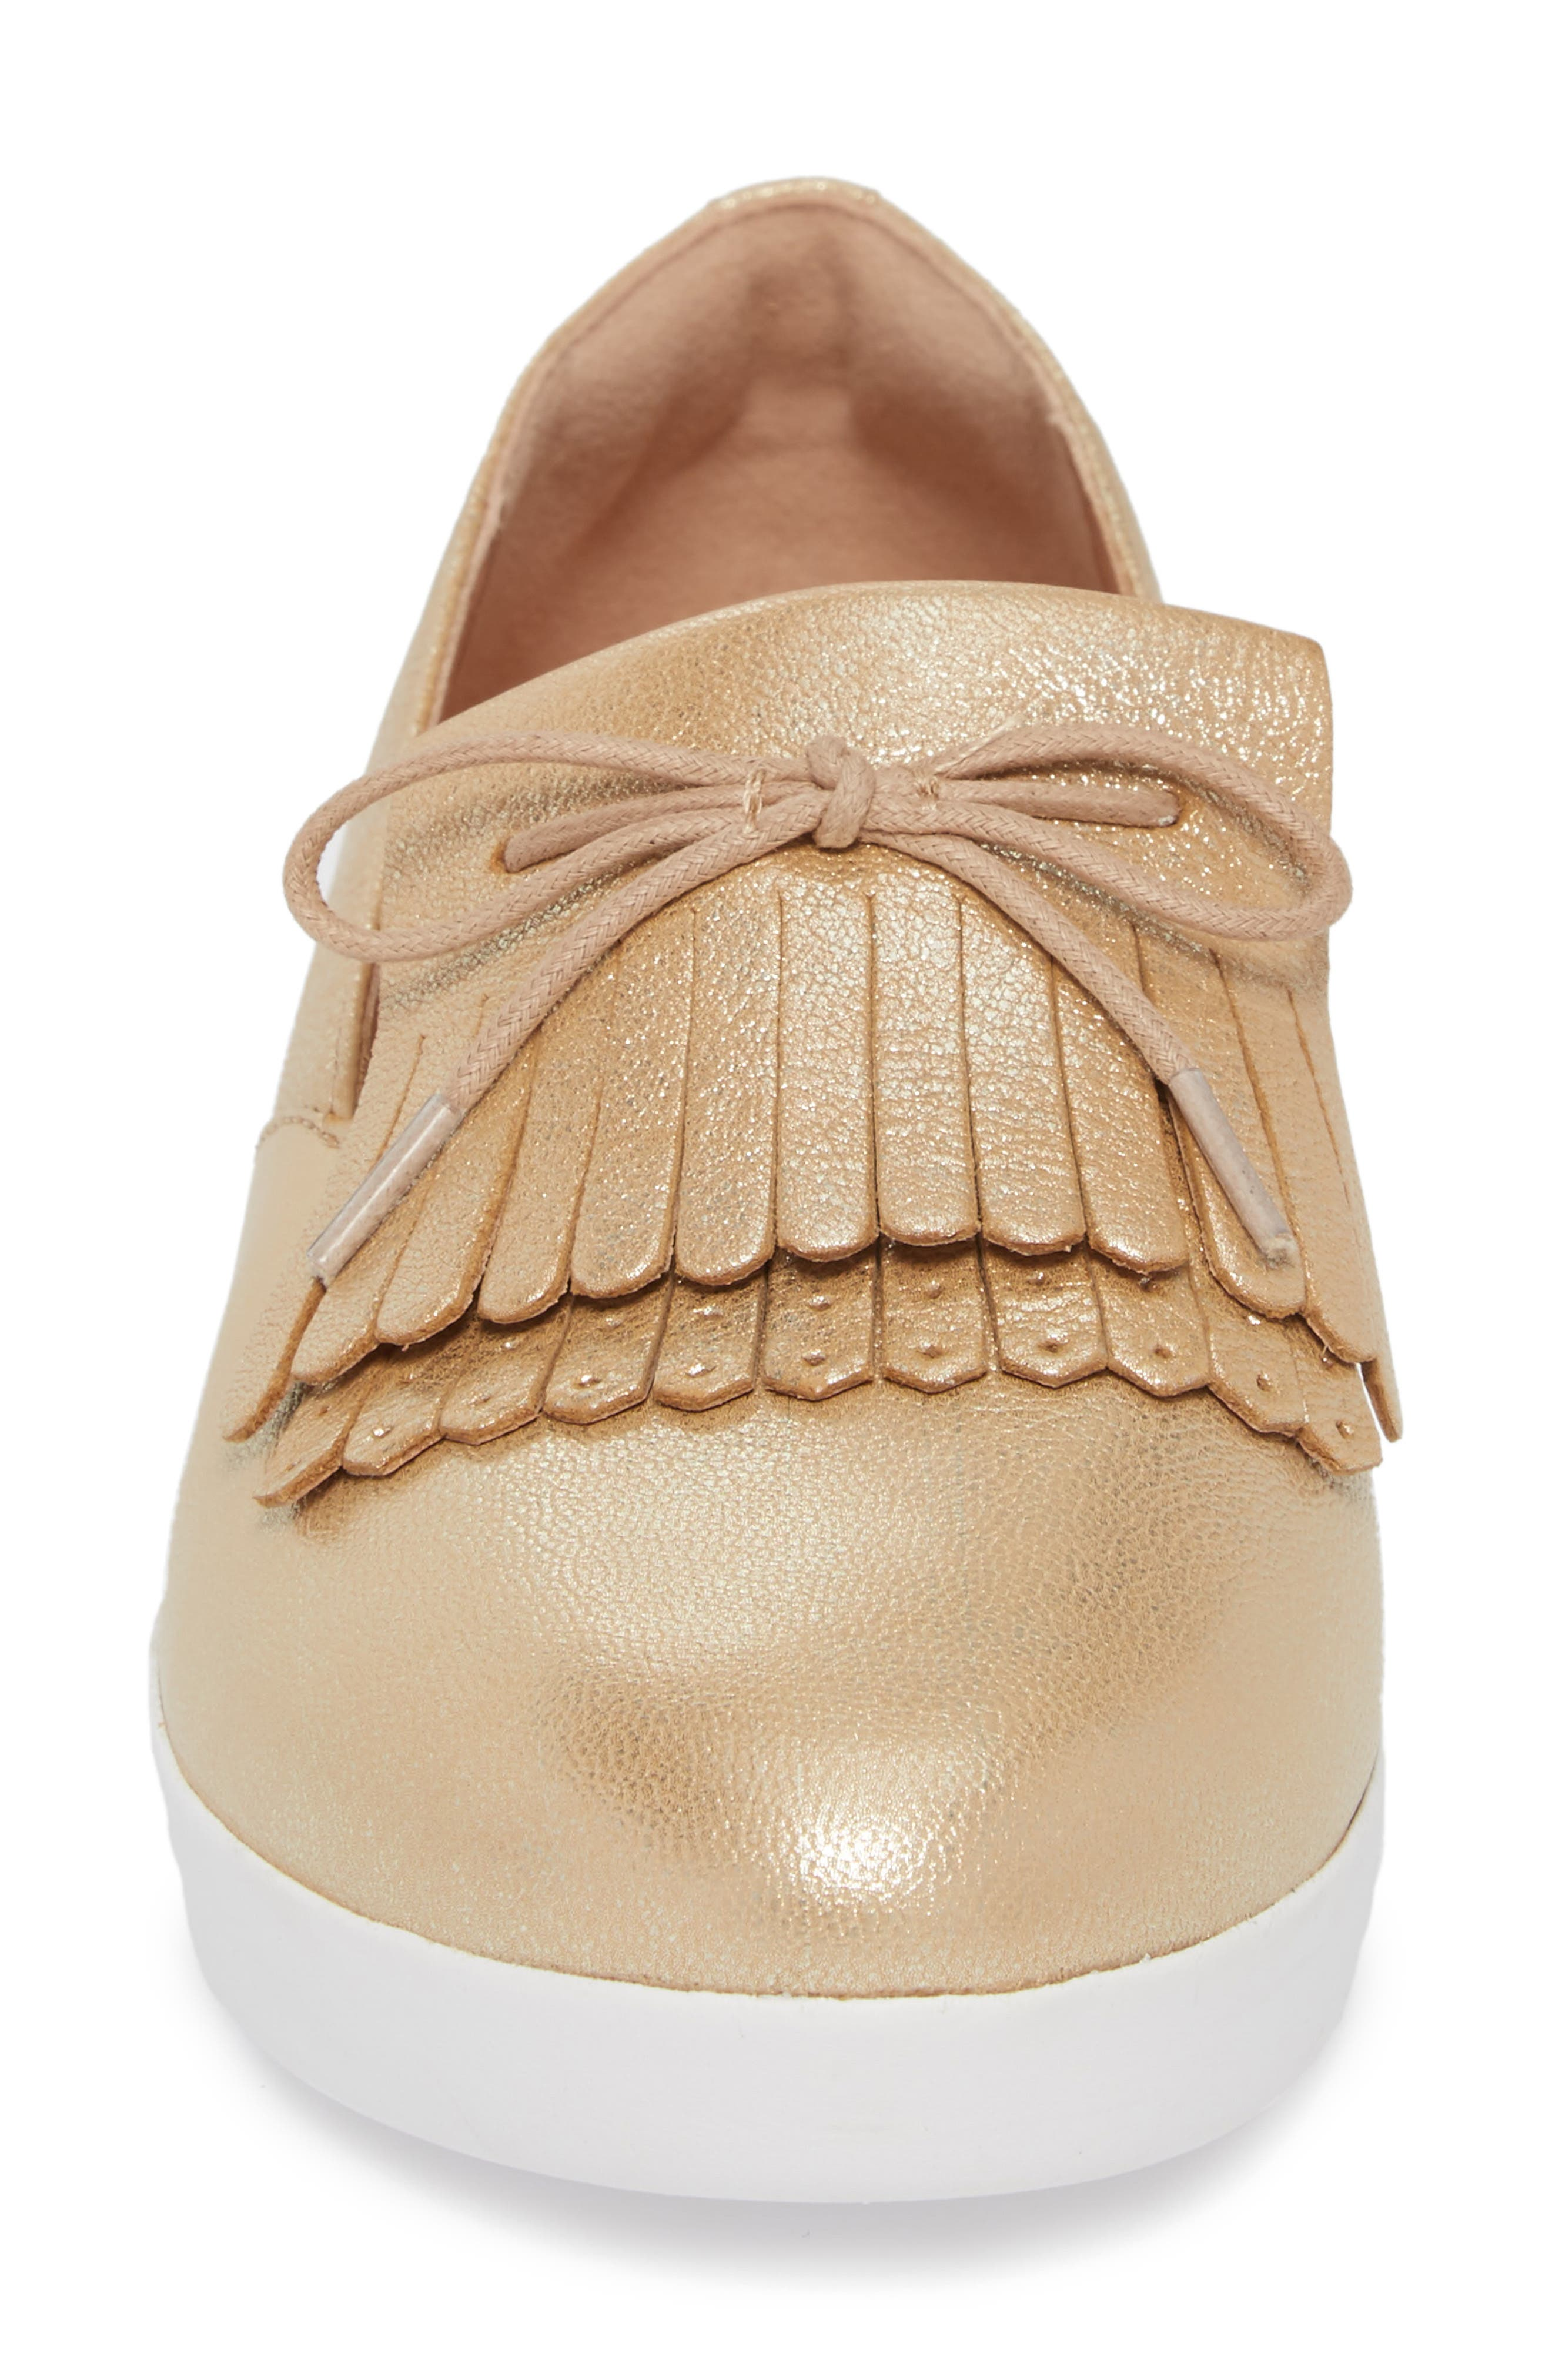 Superskate Fringe Loafer,                             Alternate thumbnail 4, color,                             Metallic Gold Leather